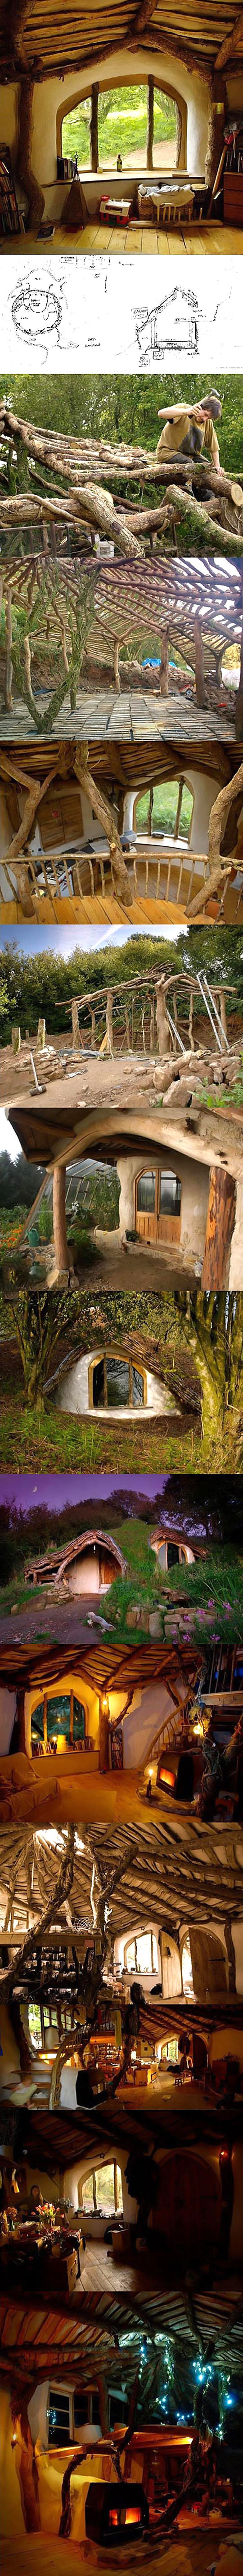 real-hobbit-house-how-to-build